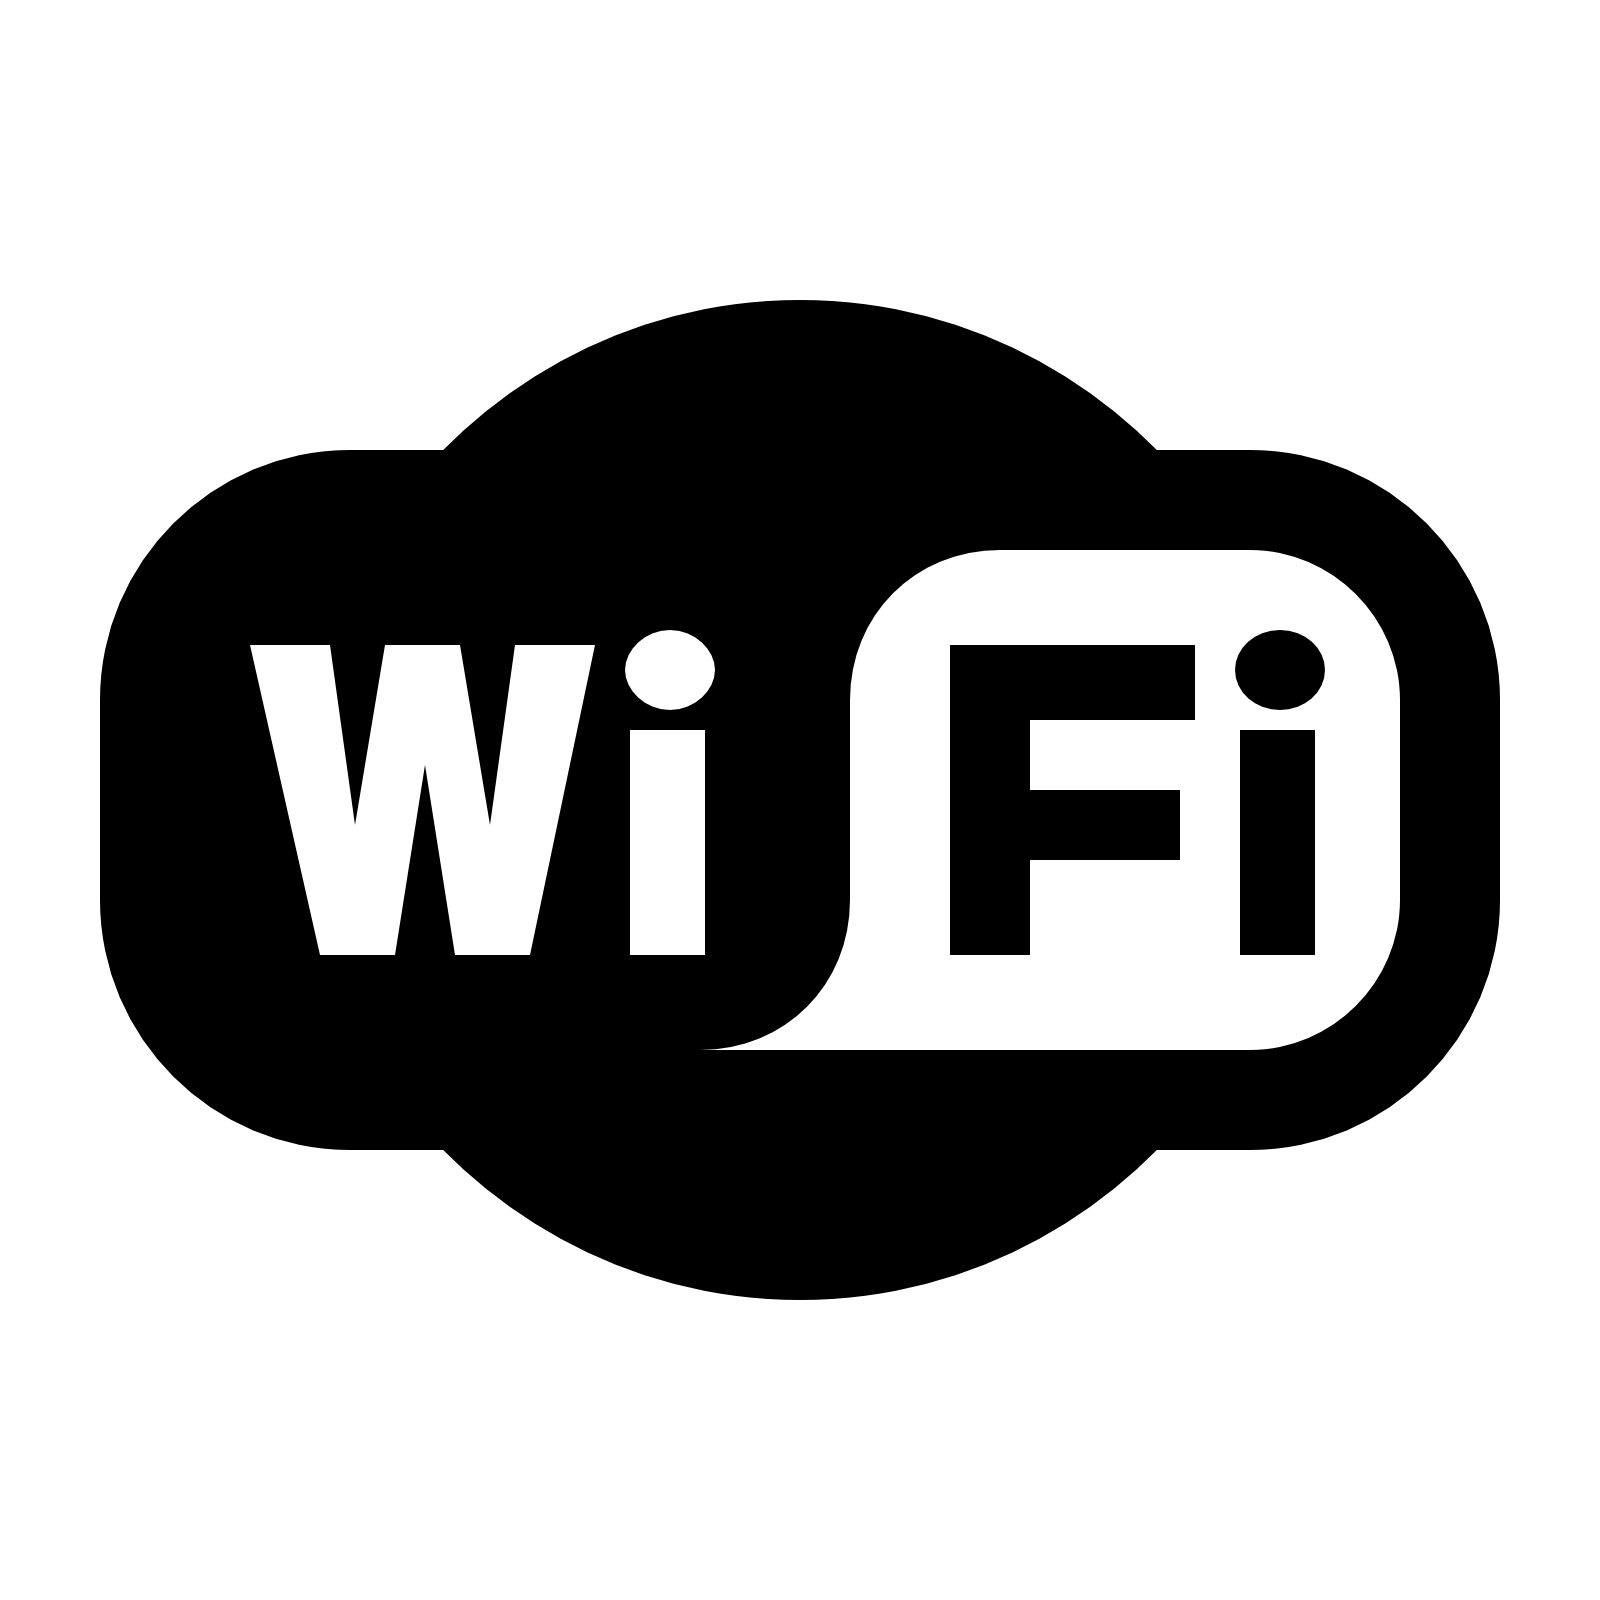 Wifi HD PNG - 91021